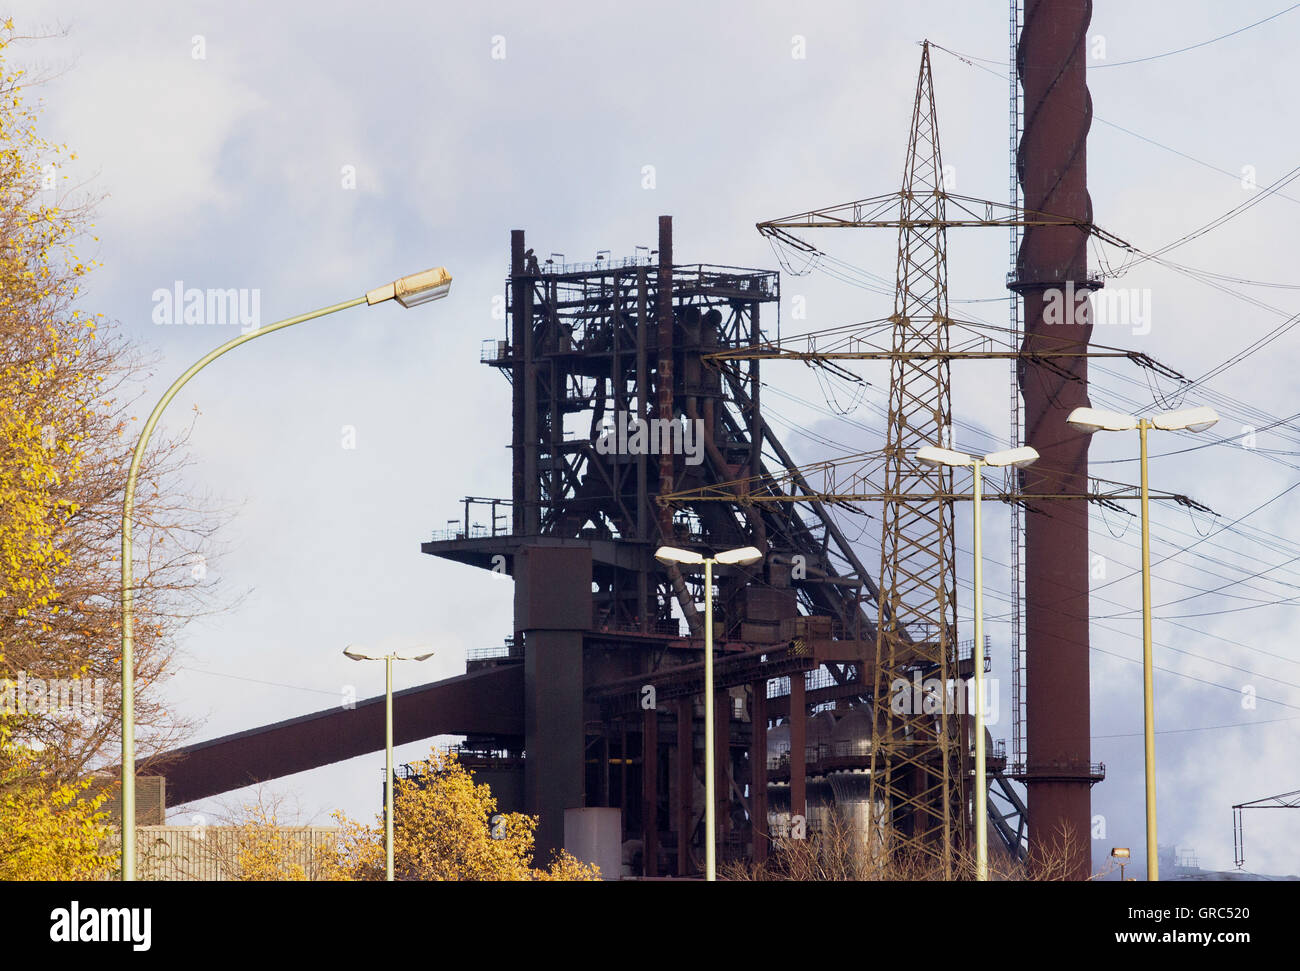 Industry - Stock Image